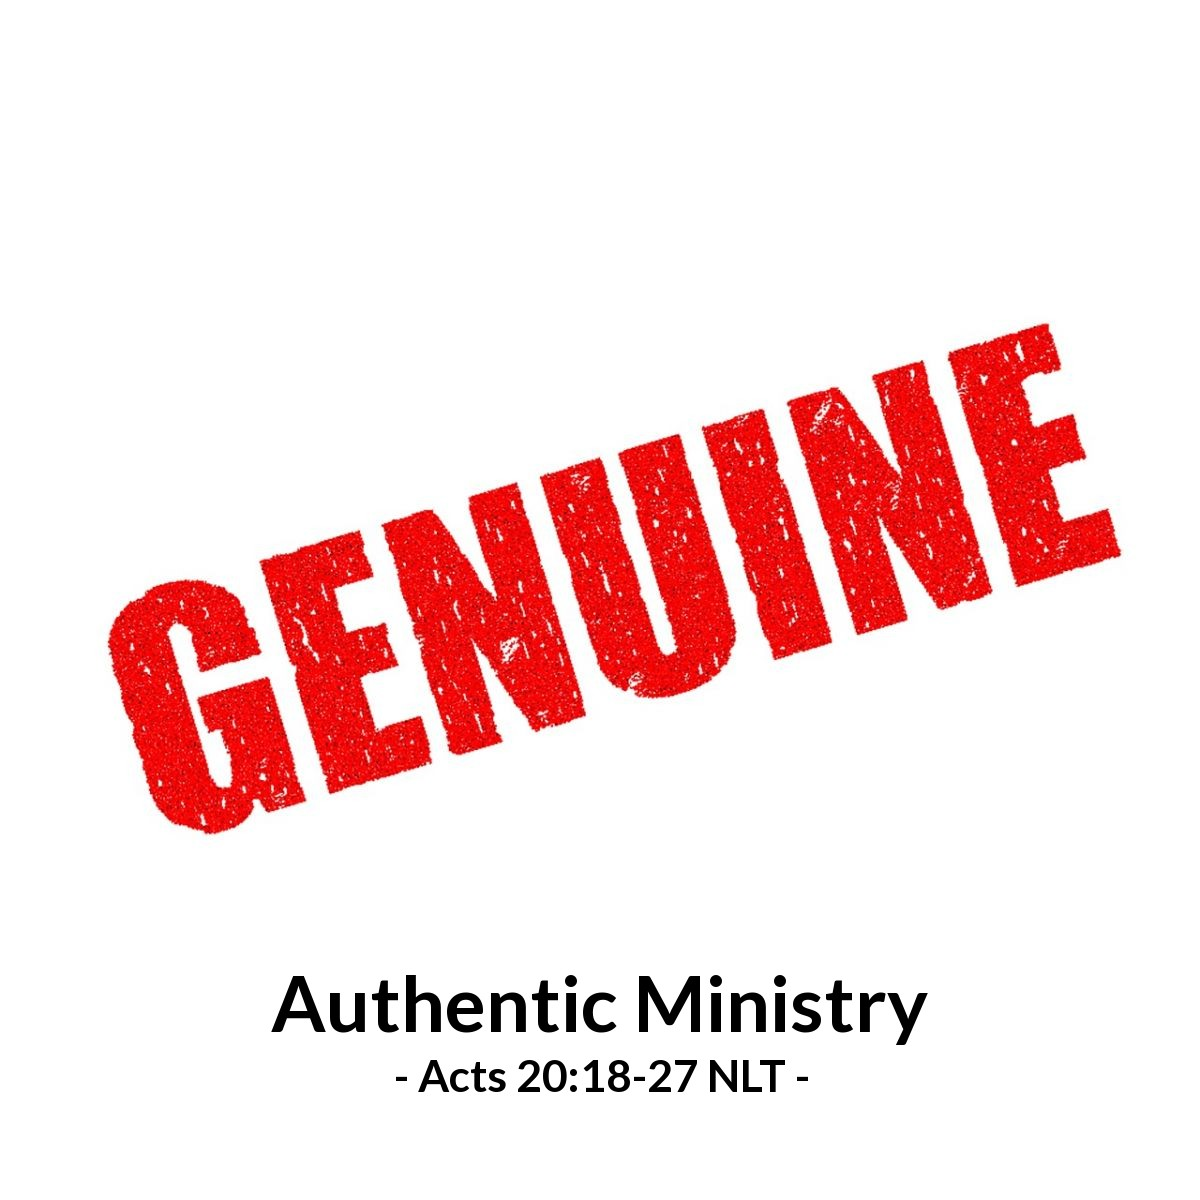 """Illustration of Acts 20:18-27 NLT — When [the elders of the Ephesian church] arrived [Paul] declared, """"You know that from the day I set foot in the province of Asia until now I have done the Lord's work humbly and with many tears. I have endured the trials that came to me from the plots of the Jews. I never shrank back from telling you what you needed to hear, either publicly or in your homes. I have had one message for Jews and Greeks alike — the necessity of repenting from sin and turning to God, and of having faith in our Lord Jesus.  """"And now I am bound by the Spirit to go to Jerusalem. I don't know what awaits me, except that the Holy Spirit tells me in city after city that jail and suffering lie ahead. But my life is worth nothing to me unless I use it for finishing the work assigned me by the Lord Jesus — the work of telling others the Good News about the wonderful grace of God.  """"And now I know that none of you to whom I have preached the Kingdom will ever see me again. I declare today that I have been faithful. If anyone suffers eternal death, it's not my fault, for I didn't shrink from declaring all that God wants you to know."""""""